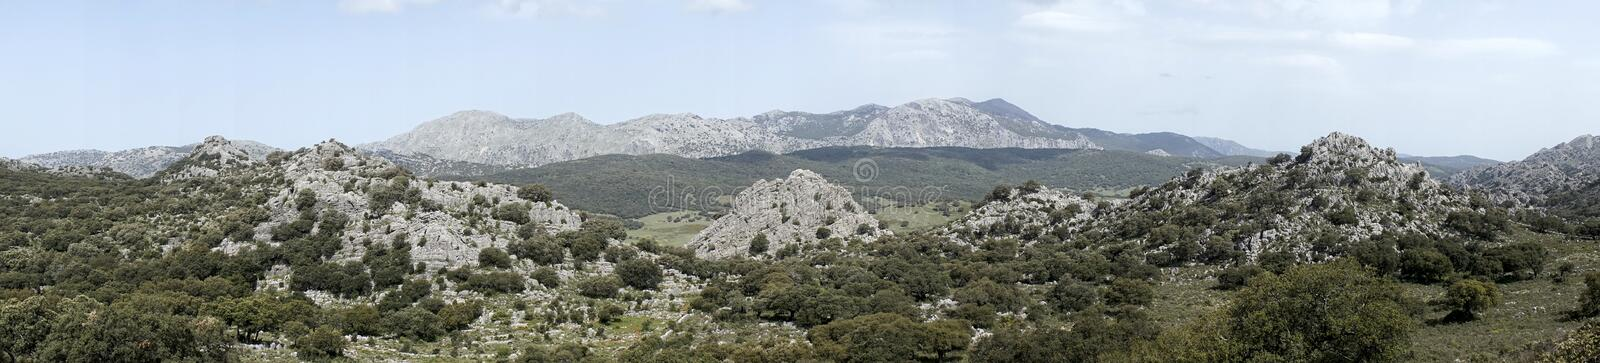 Grazalema natural park in the province of Cadiz, Andalusia, Spain royalty free stock image